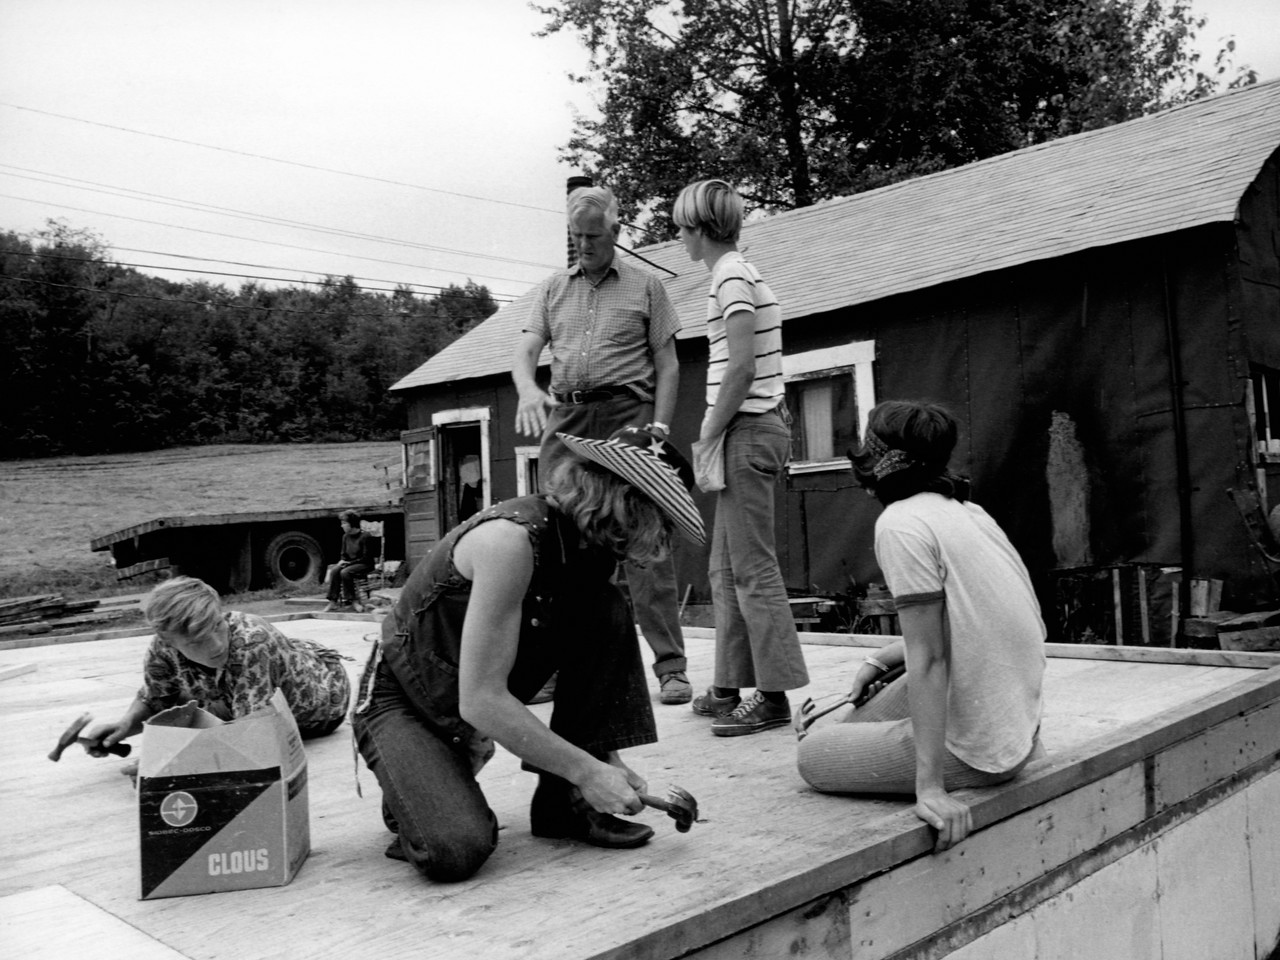 """""""Working with kids keeps me young,"""" claims VISTA member Charles Jackson, 60, who worked on a home repair and construction project near Island Pond, Vermont, in 1983. Jackson and this group of New York City trainees are building a house to replace the shack in the background. Jackson, a native of Vermont and a former field executive for the Boy Scouts, has been a VISTA volunteer for three years. (© 1983 Corporation for National and Community Service - Office of Public Affairs)"""